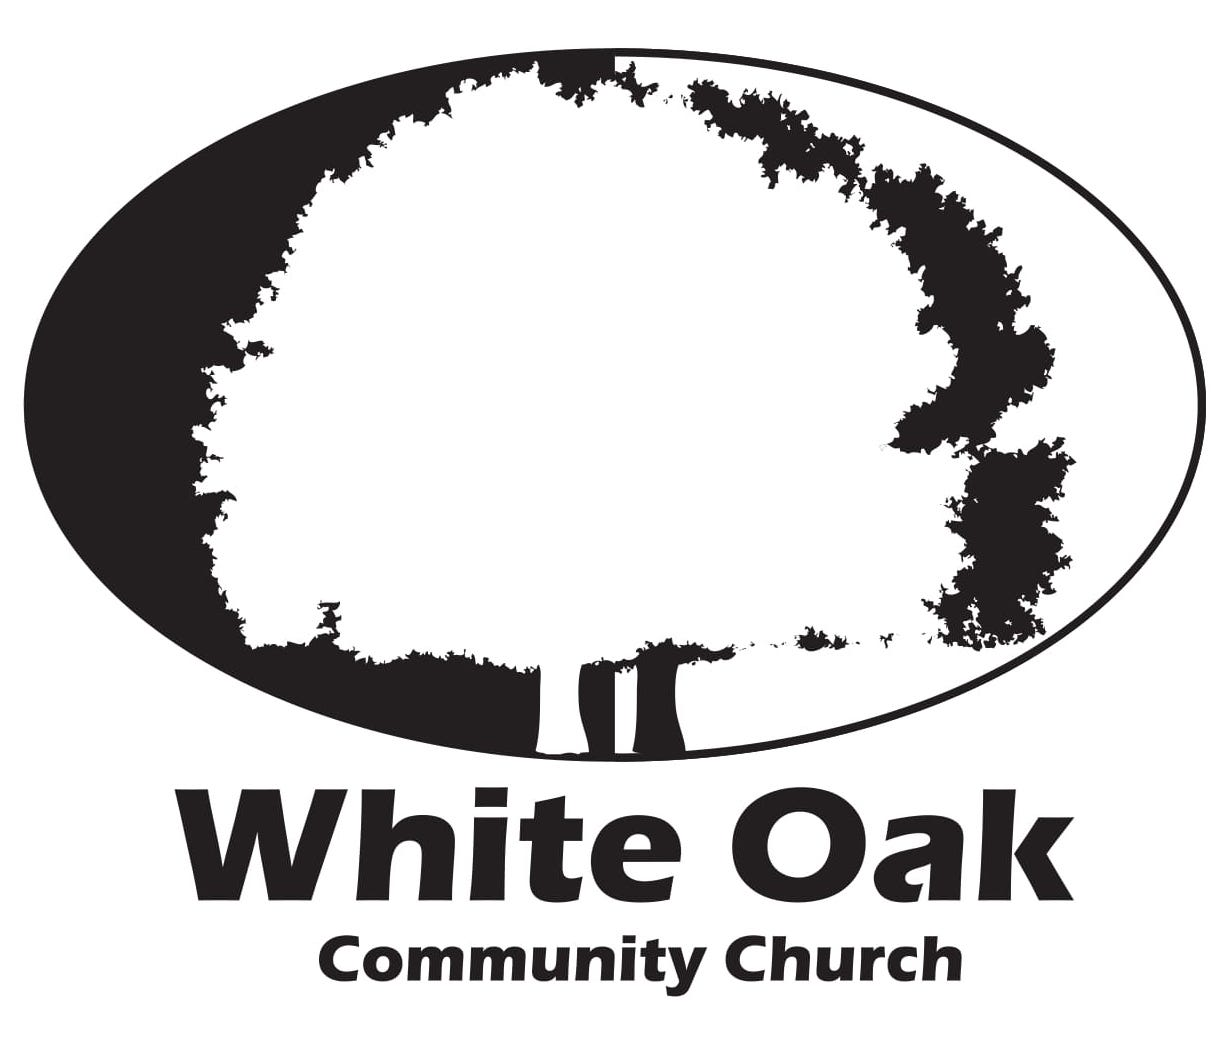 White Oak Community Church